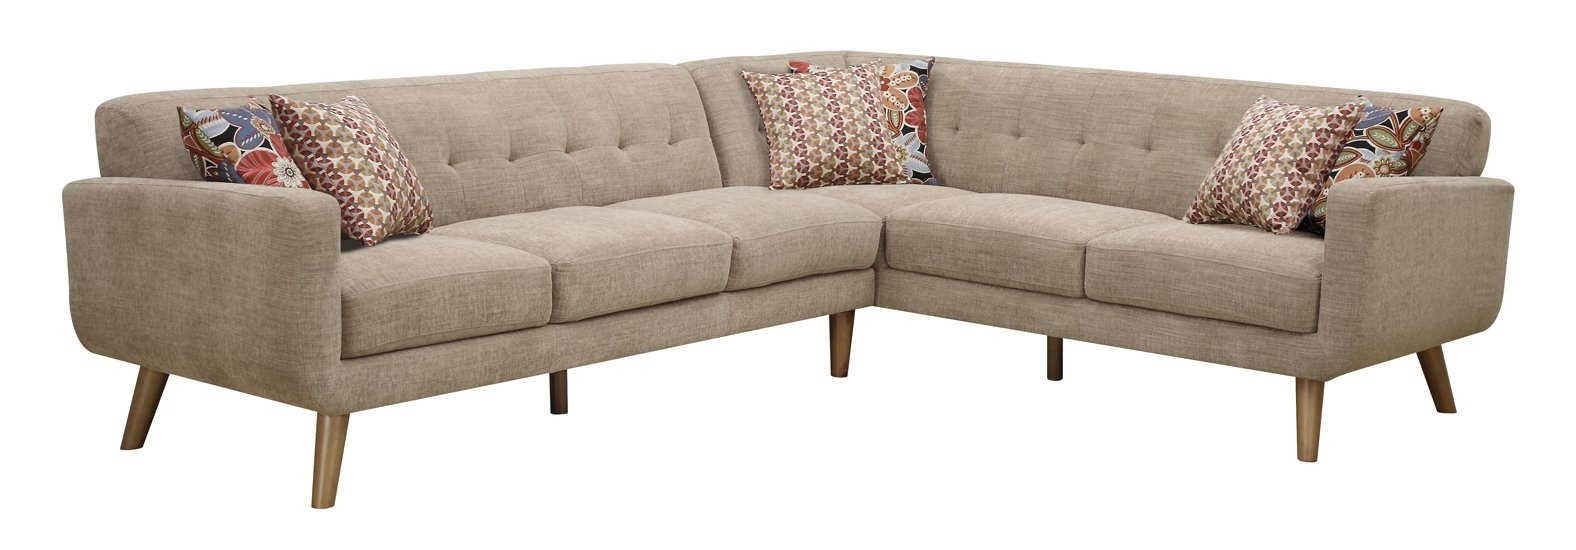 Kerri 2 Piece Sectional Wlaf Chaise Qty – Home Pictures Ideas For Malbry Point 3 Piece Sectionals With Laf Chaise (View 14 of 25)